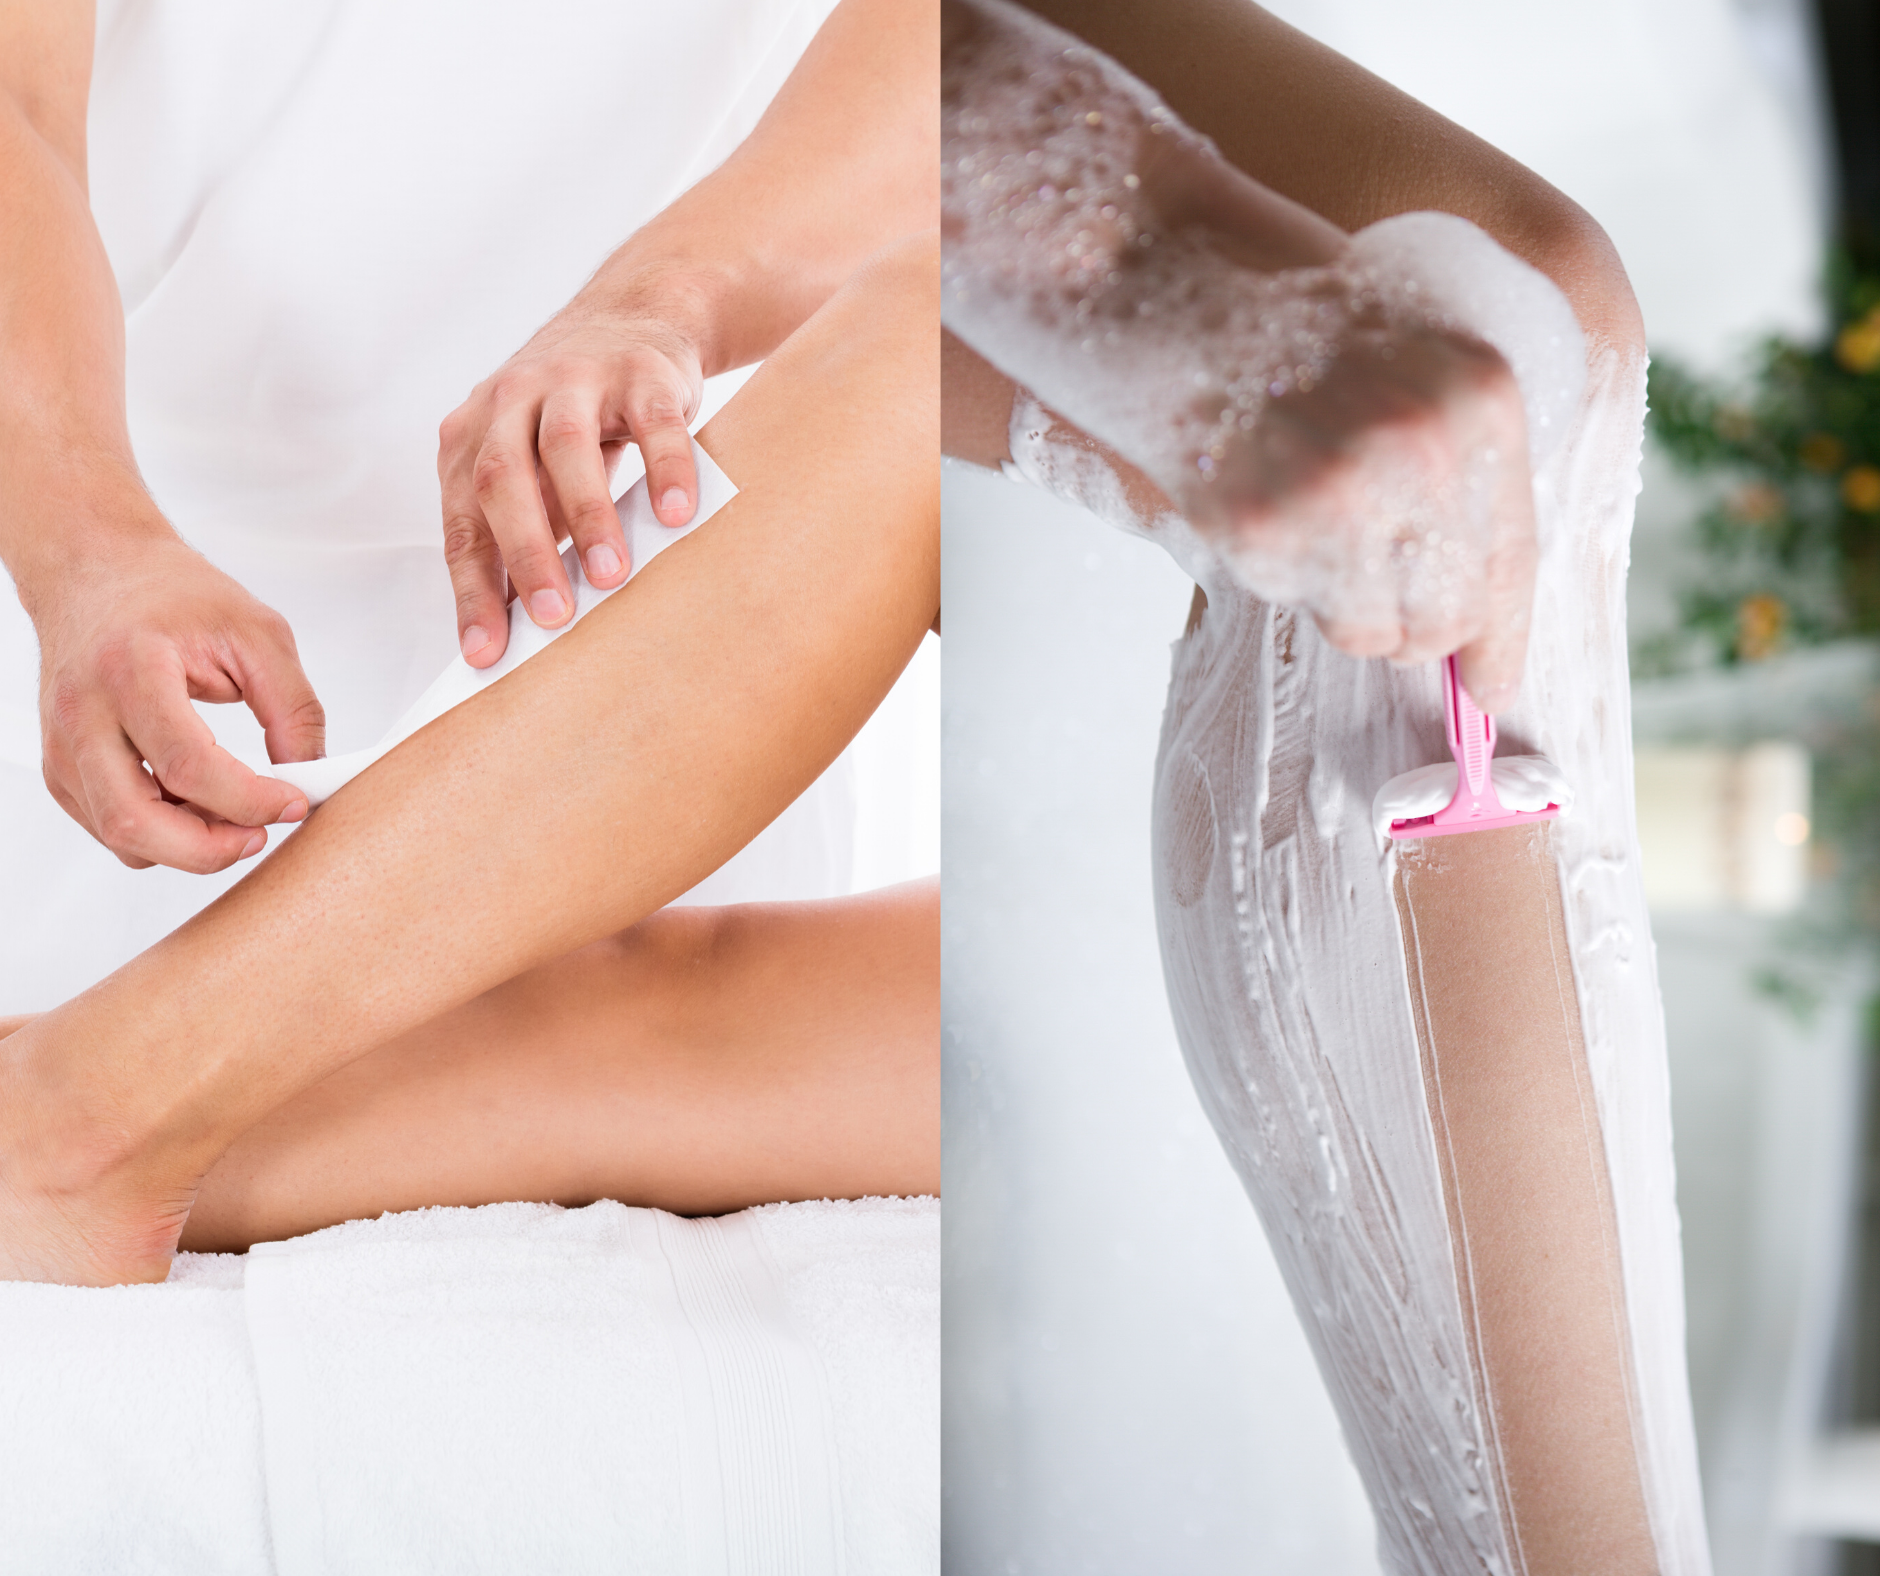 waxing vs shaving, mkp waxing salon